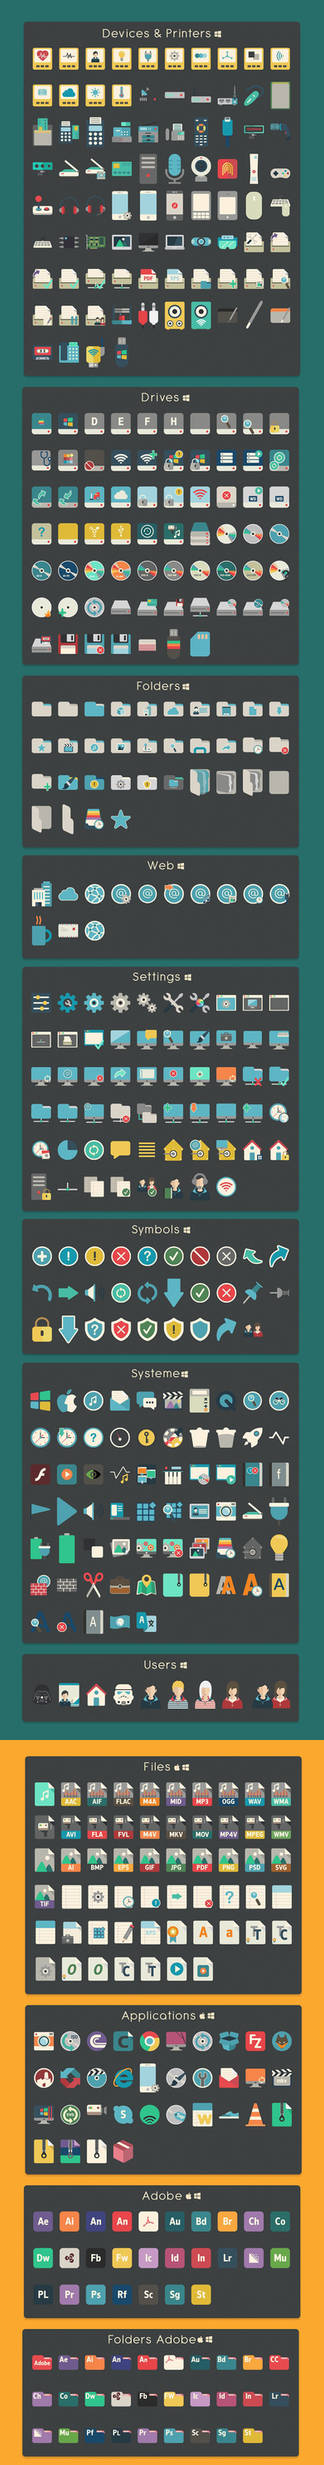 iConadams 700 icons for Windows and Mac